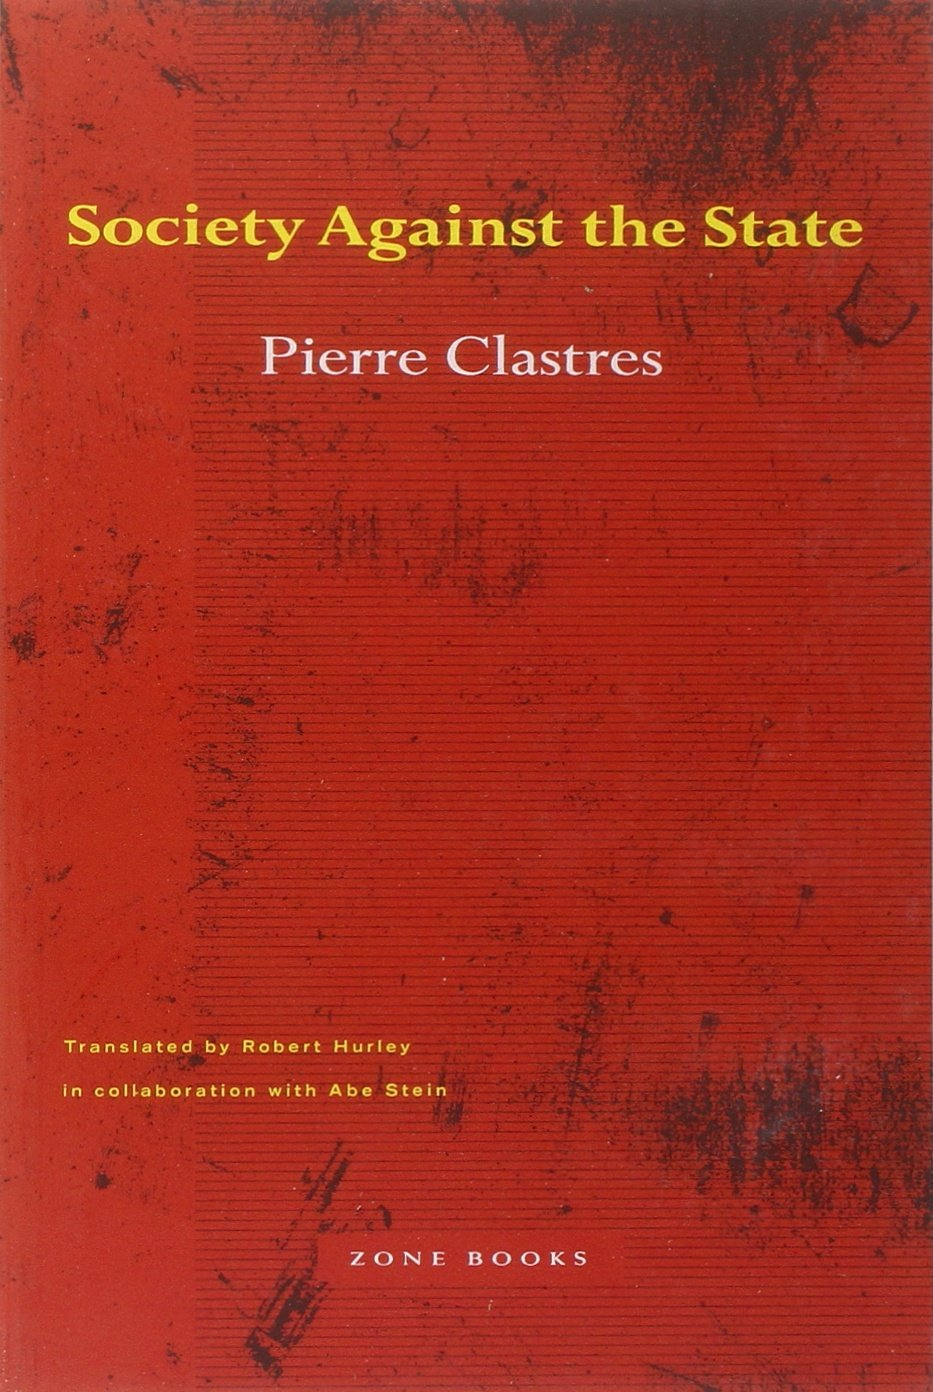 society against the state essays in political anthropology  society against the state essays in political anthropology pierre clastres robert hurley abe stein 9780942299014 com books